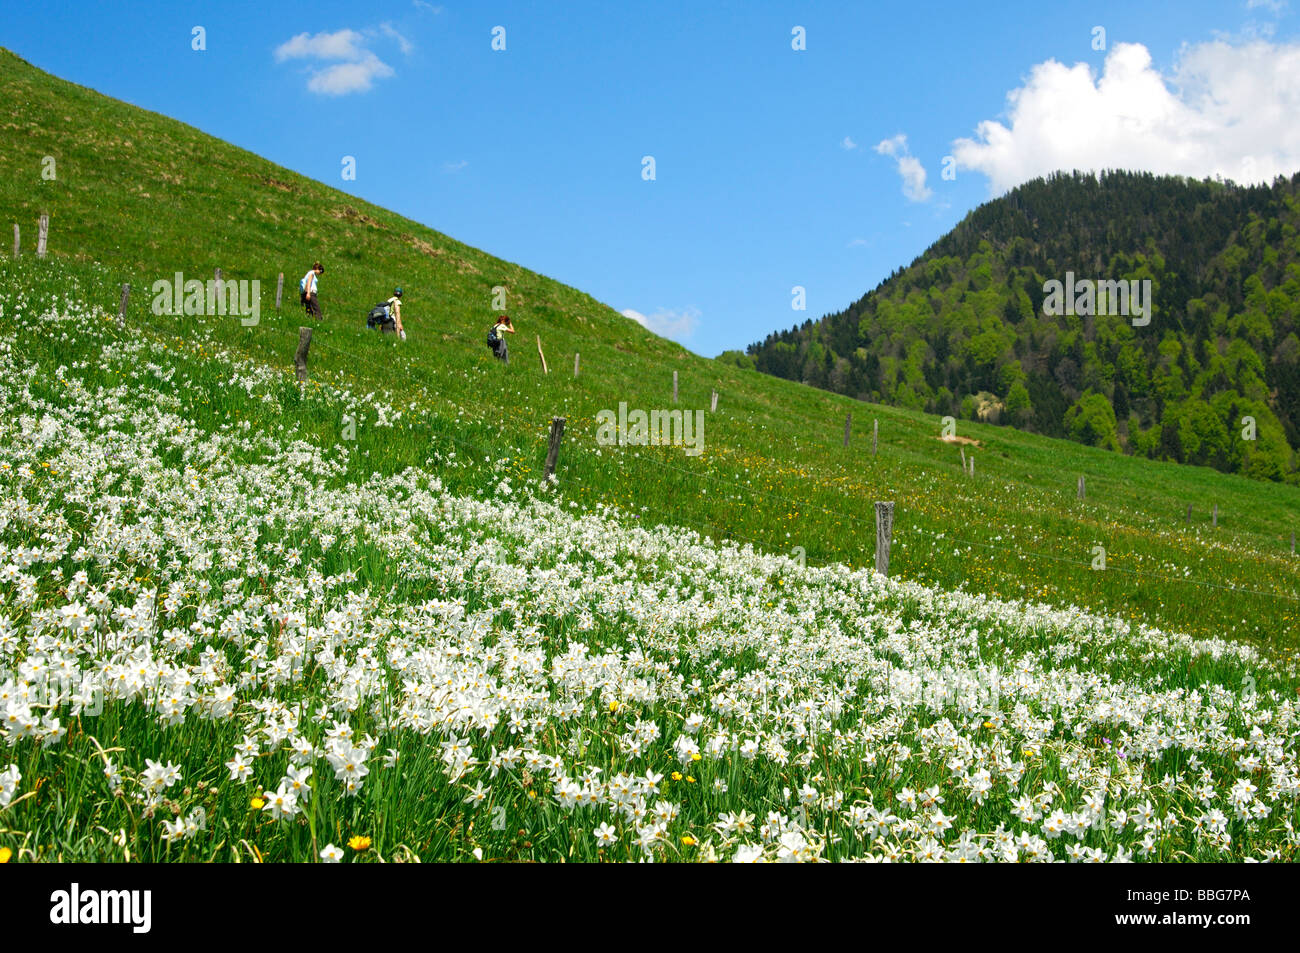 Hikers passing a mountain meadow in spring with blooming white narcissus, Montreux-daffodil (Narcissus poeticus), - Stock Image